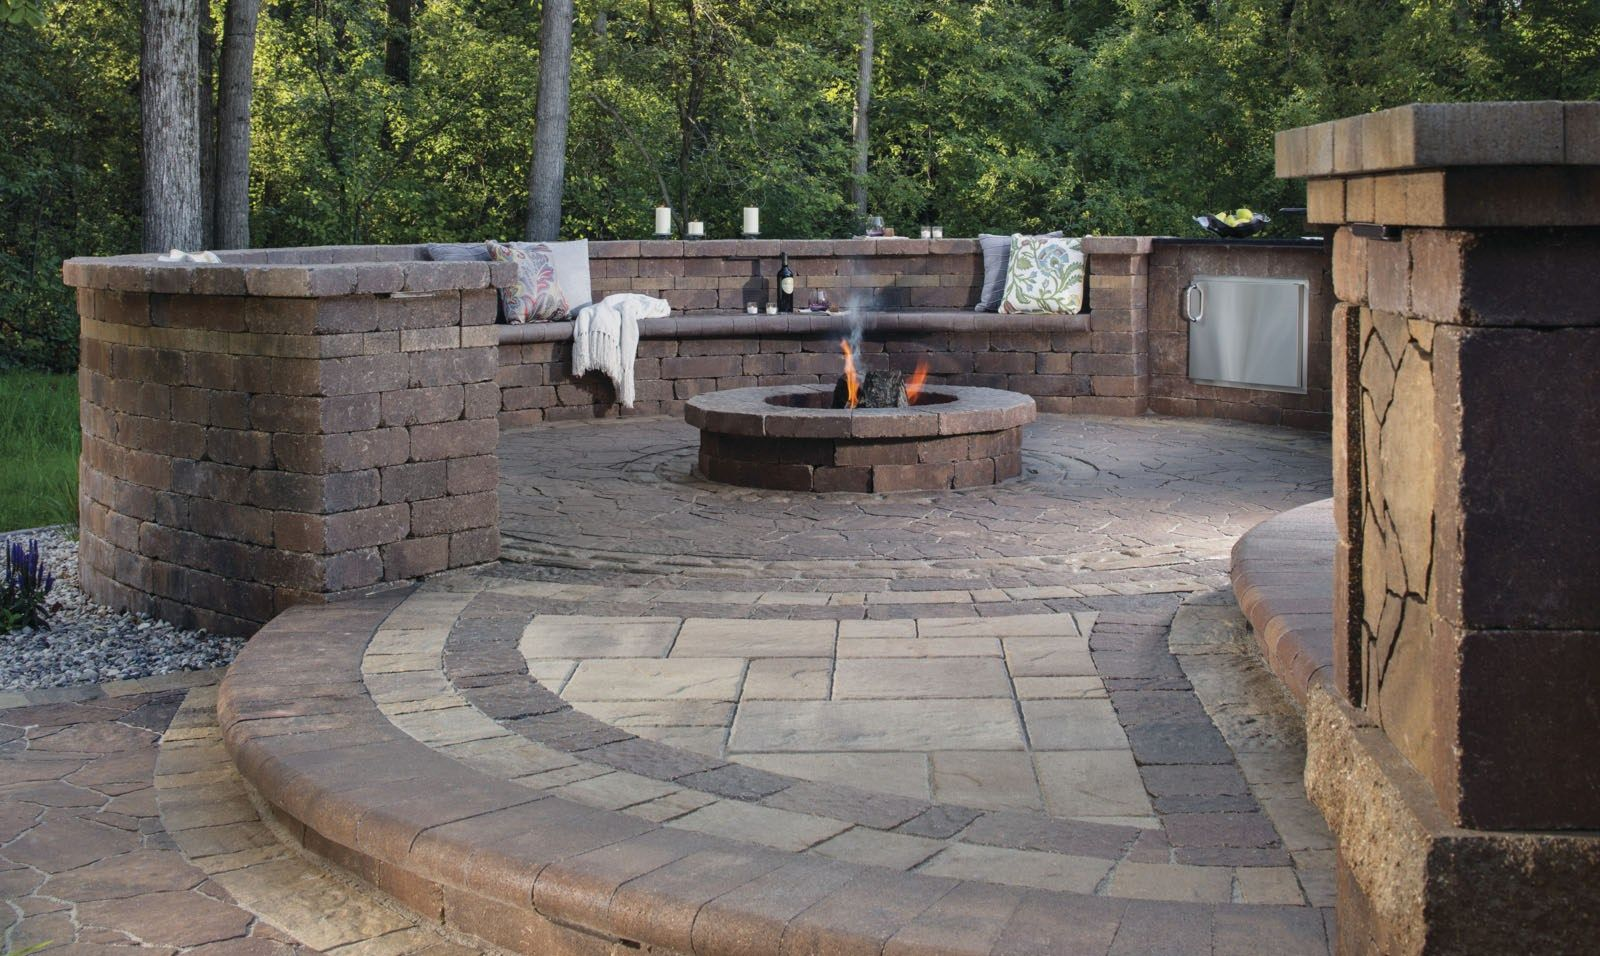 This Fire Pit Patio Is Adjacent To An Outdoor Bar Area The Seat Wall Extends From The Built In Bar Fire Pit Patio Backyard Patio Designs Outdoor Living Design